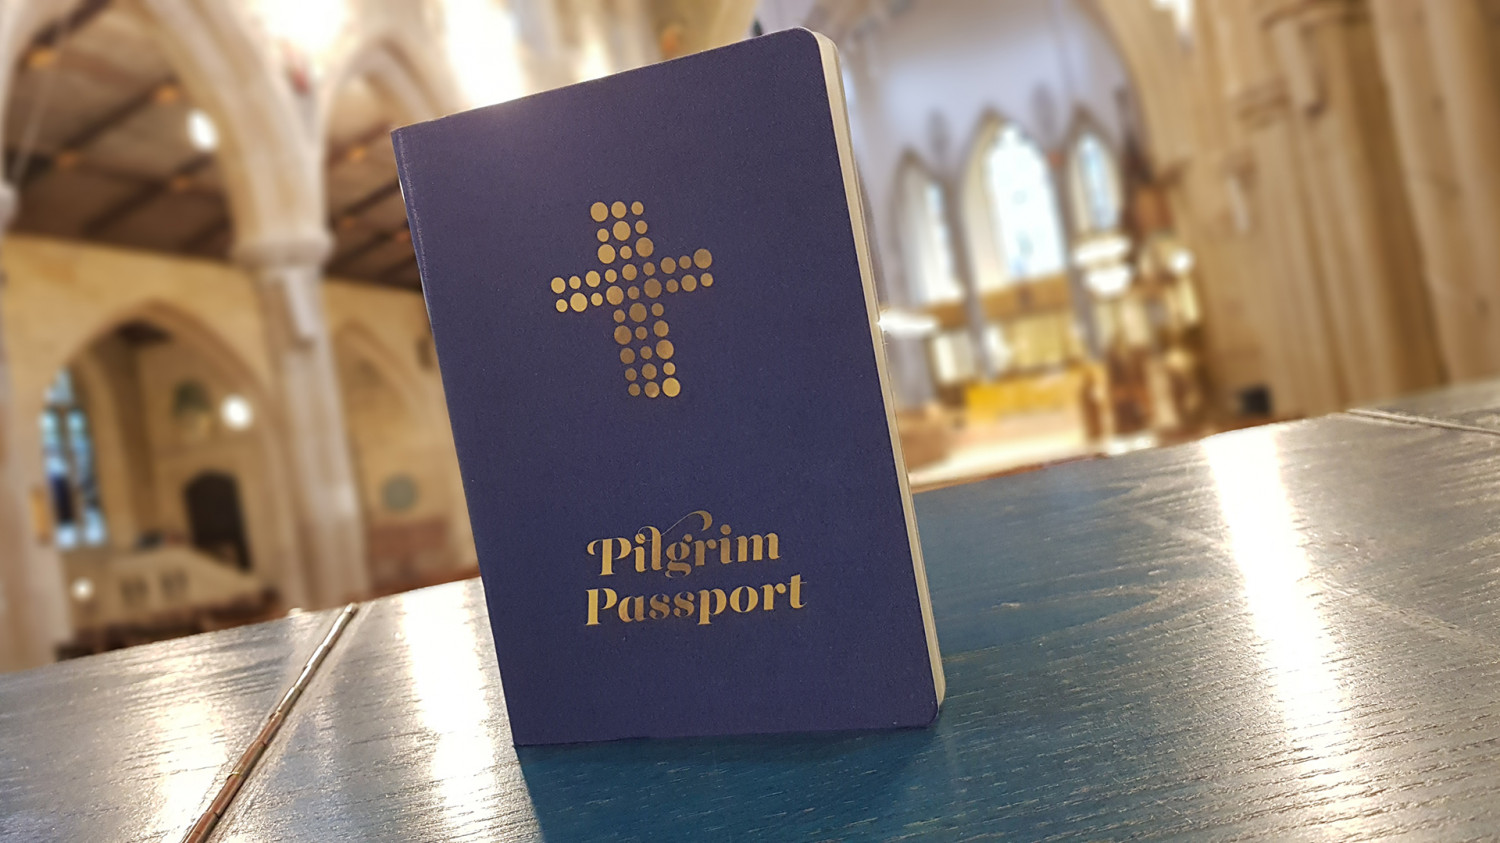 Pilgrim Passport